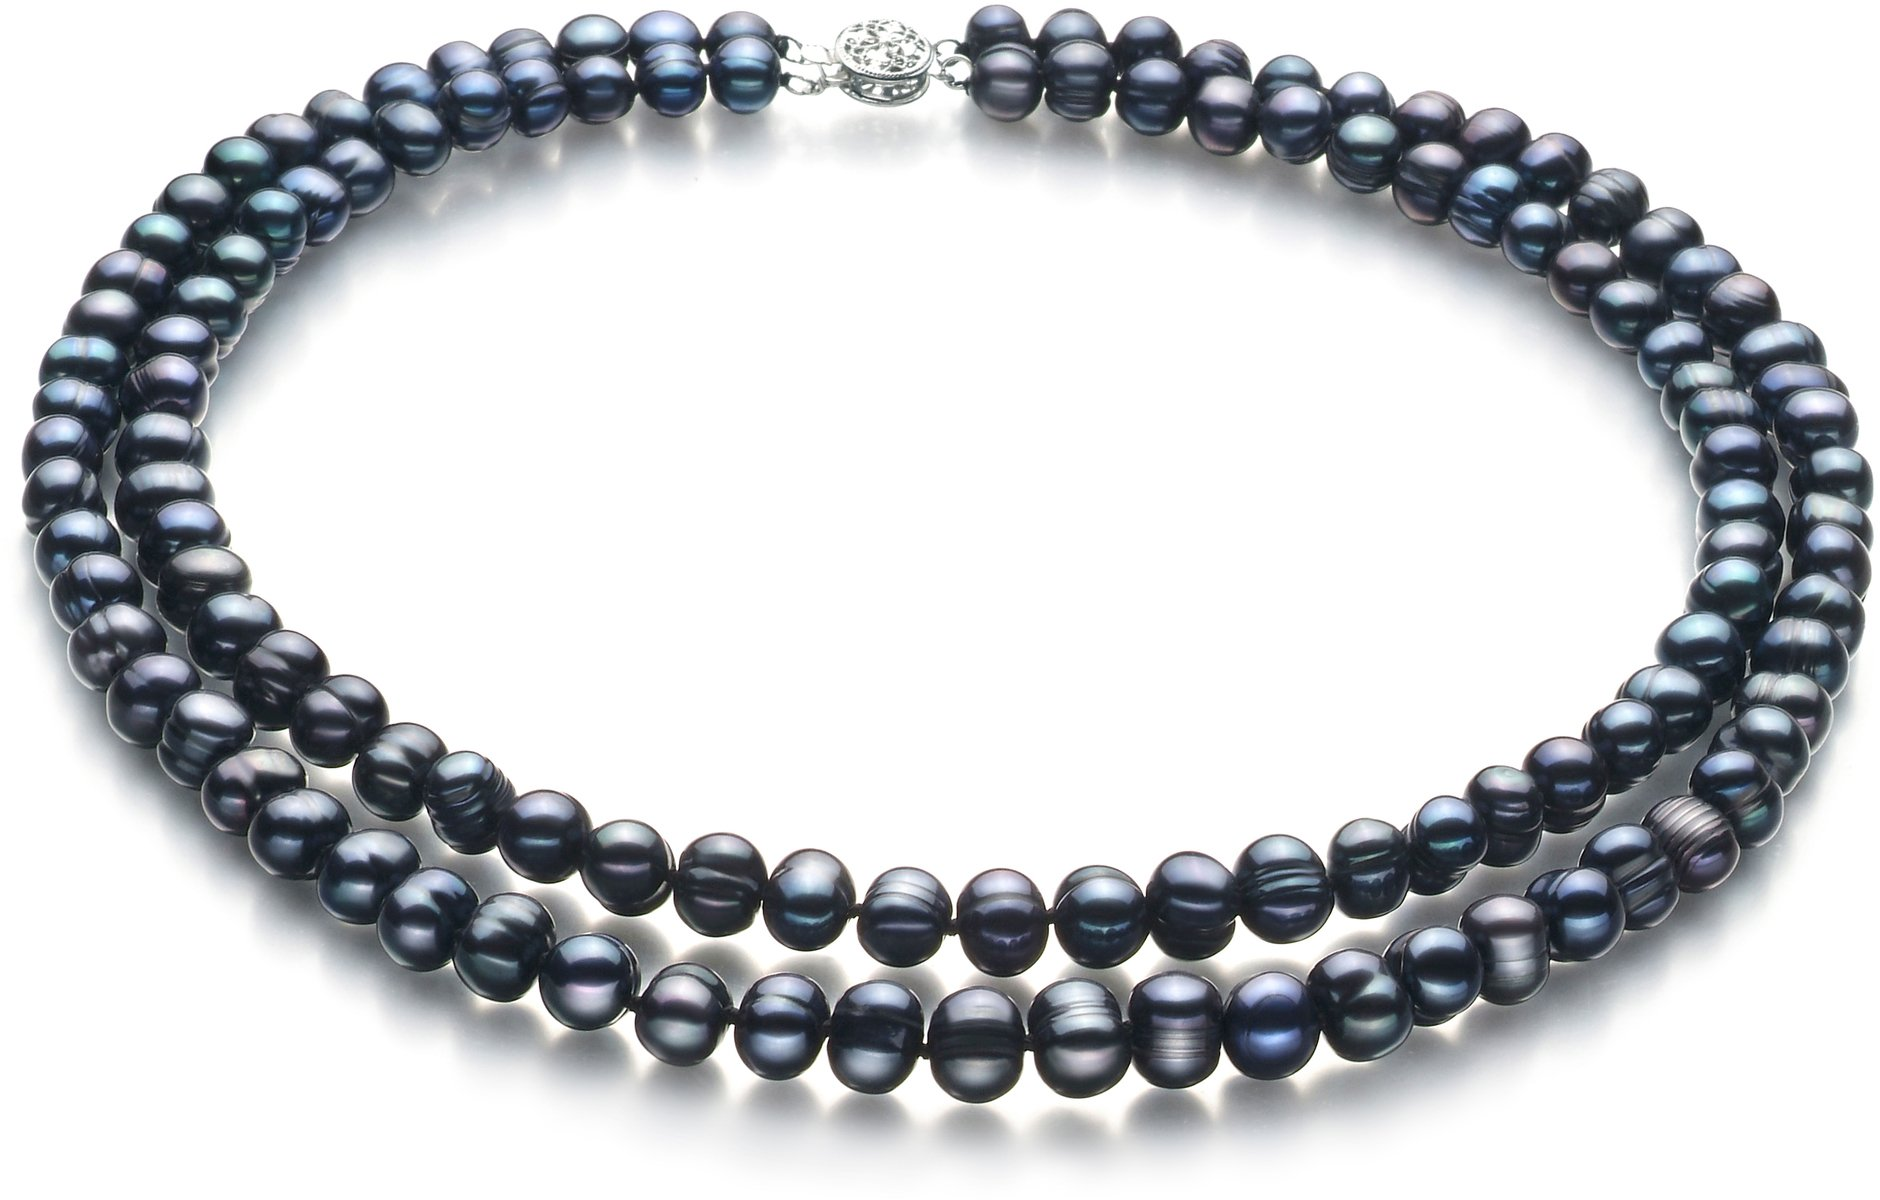 Eliana Black 6-7mm Double Strand A Quality Freshwater Cultured Pearl Necklace-16 in Chocker length